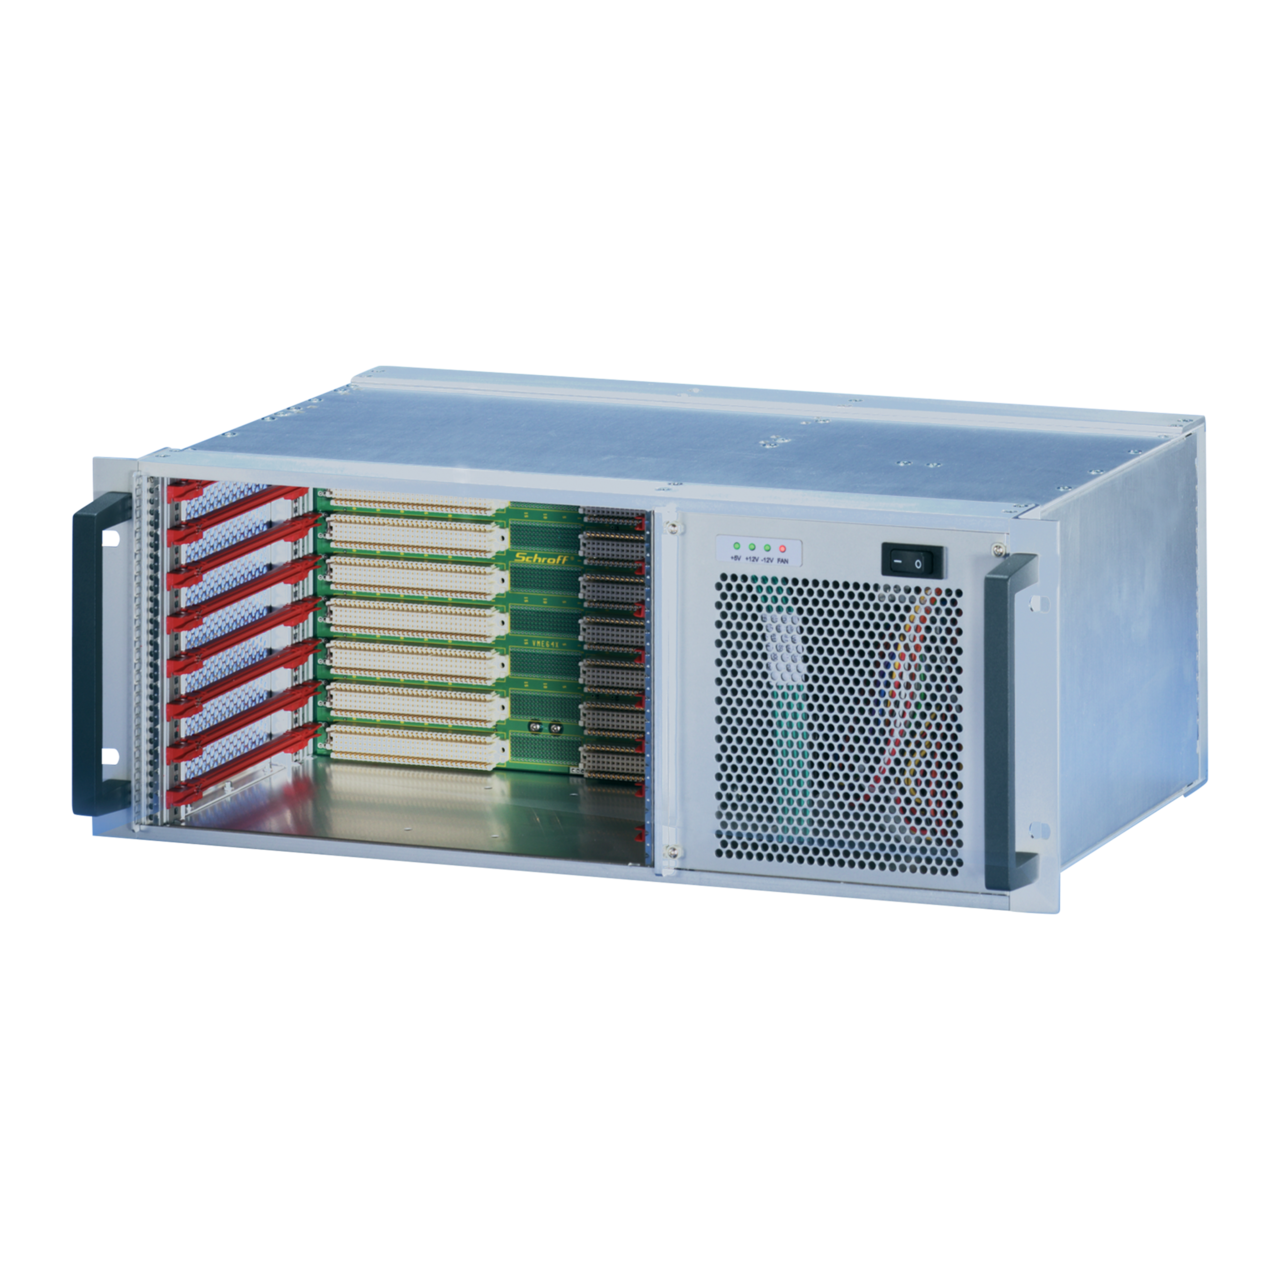 Image for VME64x-based systems 4 U, 8 slot, with rear I/O from nVent SCHROFF | Europe, Middle East, Africa and India